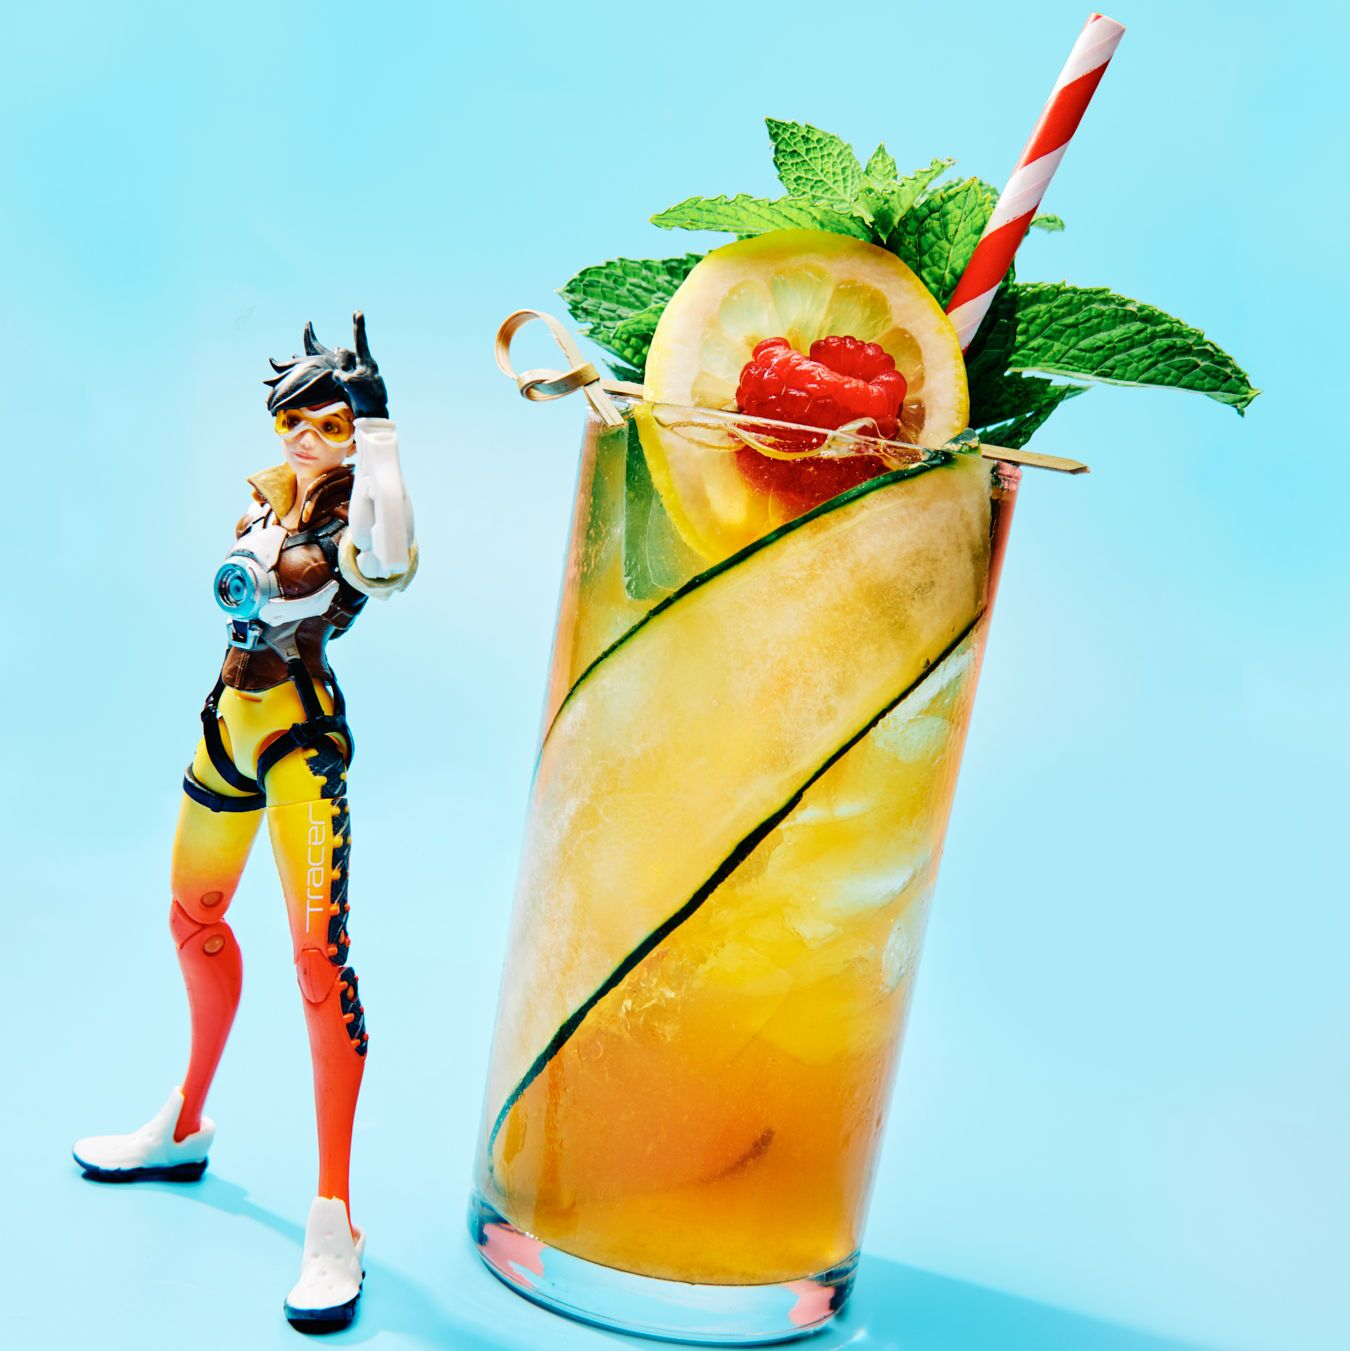 Get your game on with these video game themed cocktails